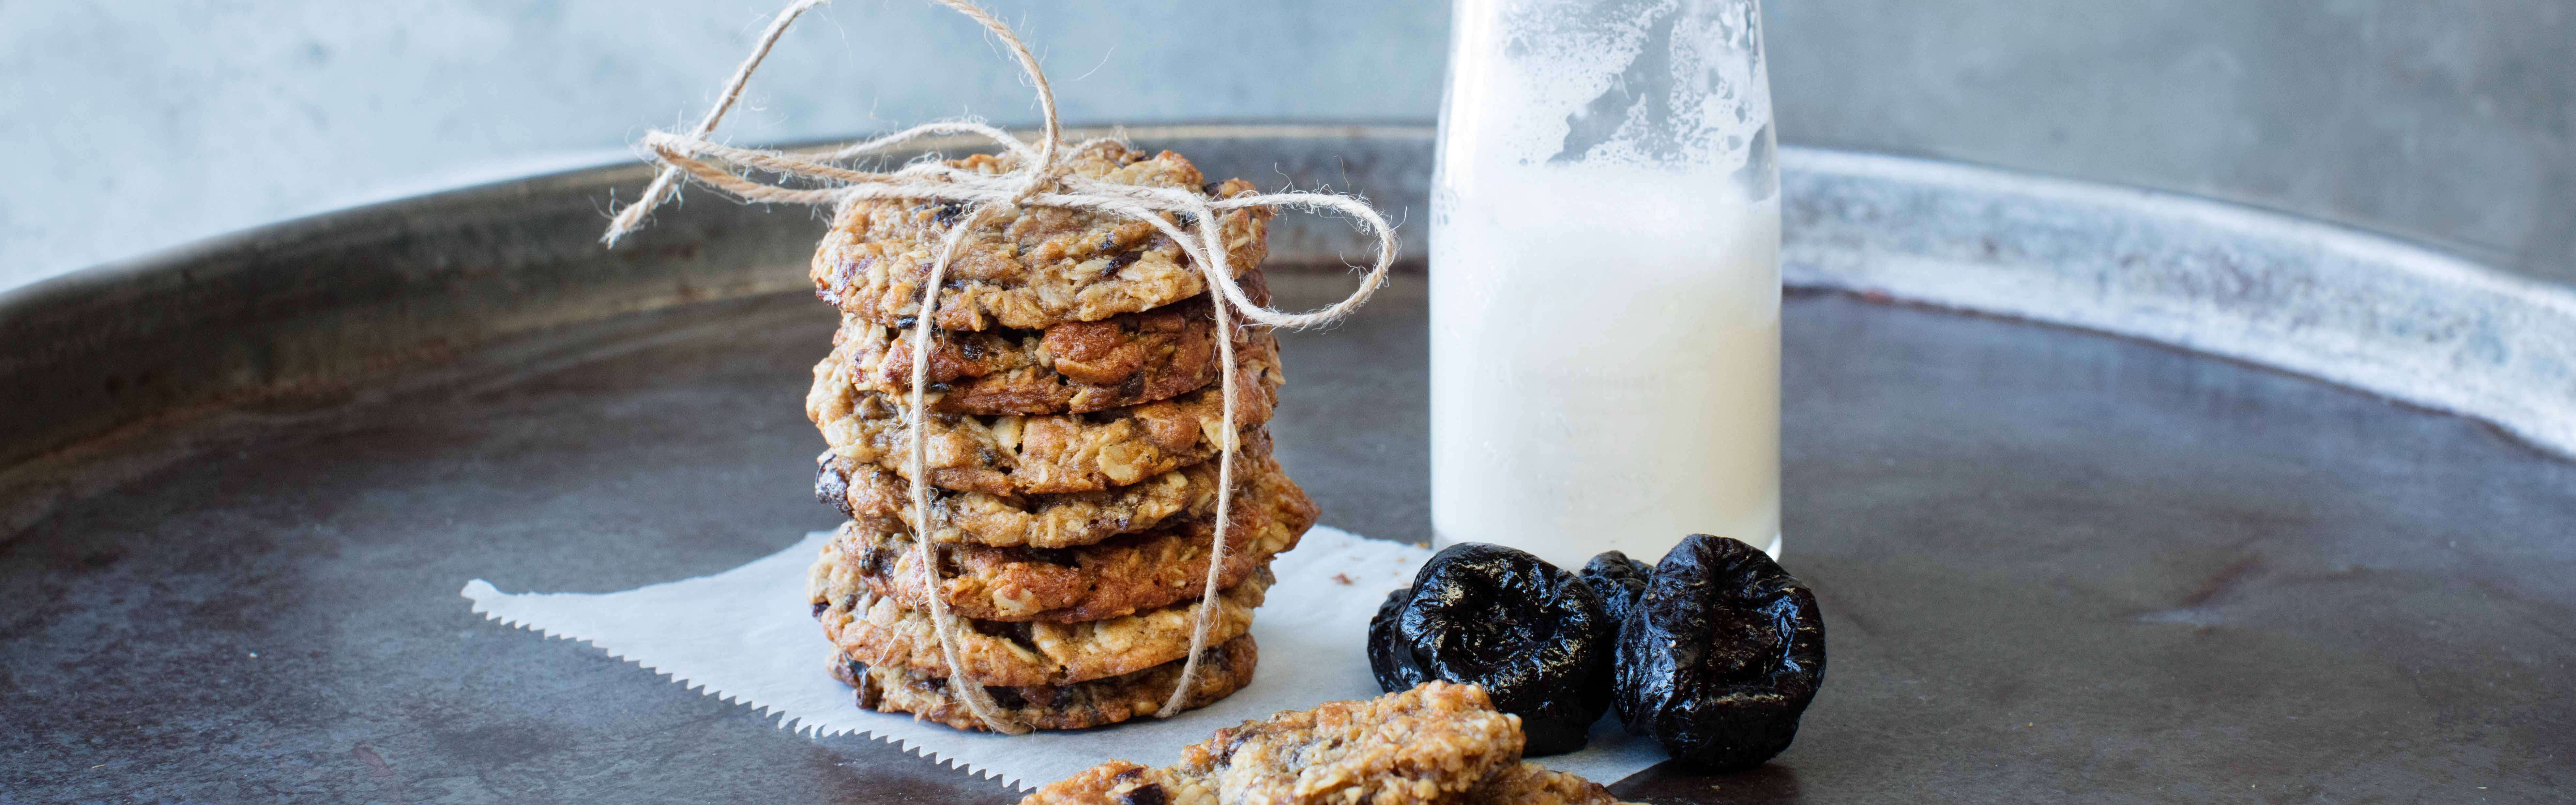 <p>These Anzac biscuits (cookies in the U.S.) have a third less cane sugar and 20% less butter than the original recipe. The way they stay rich in flavor is thanks to prunes.</p>